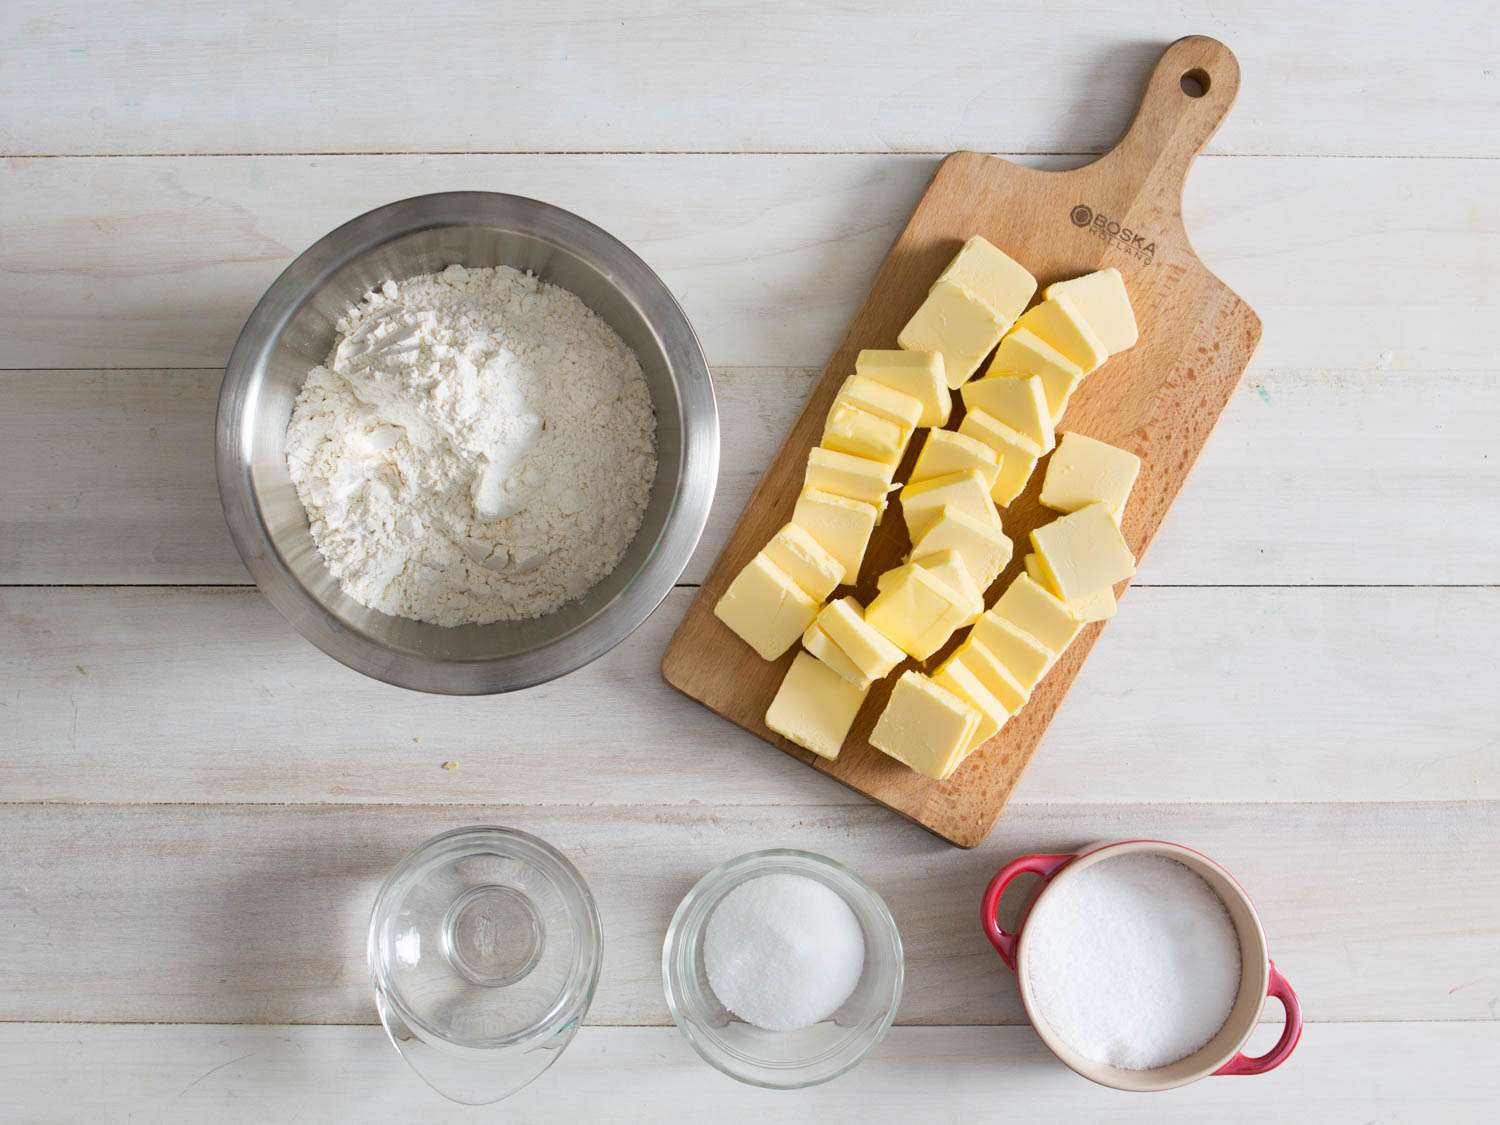 Overhead image showing ingredients (flour, butter, water, sugar, and salt) for all-butter pie dough.